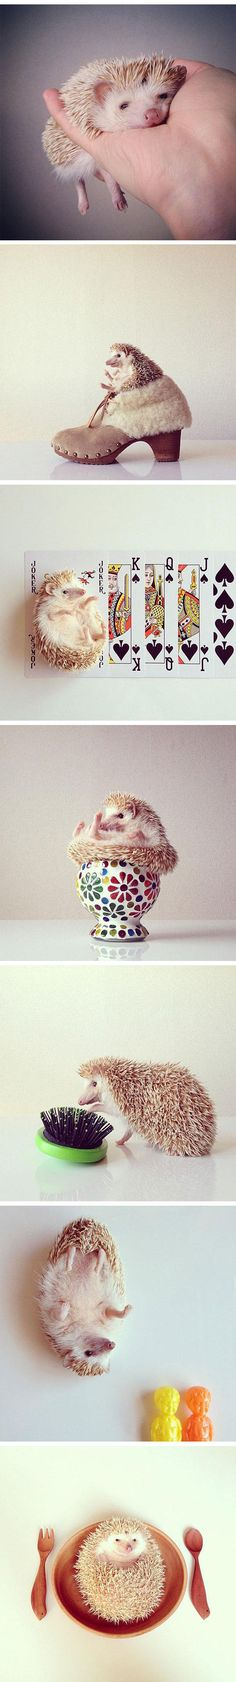 Cute Hedgehog waaaaant たまらん